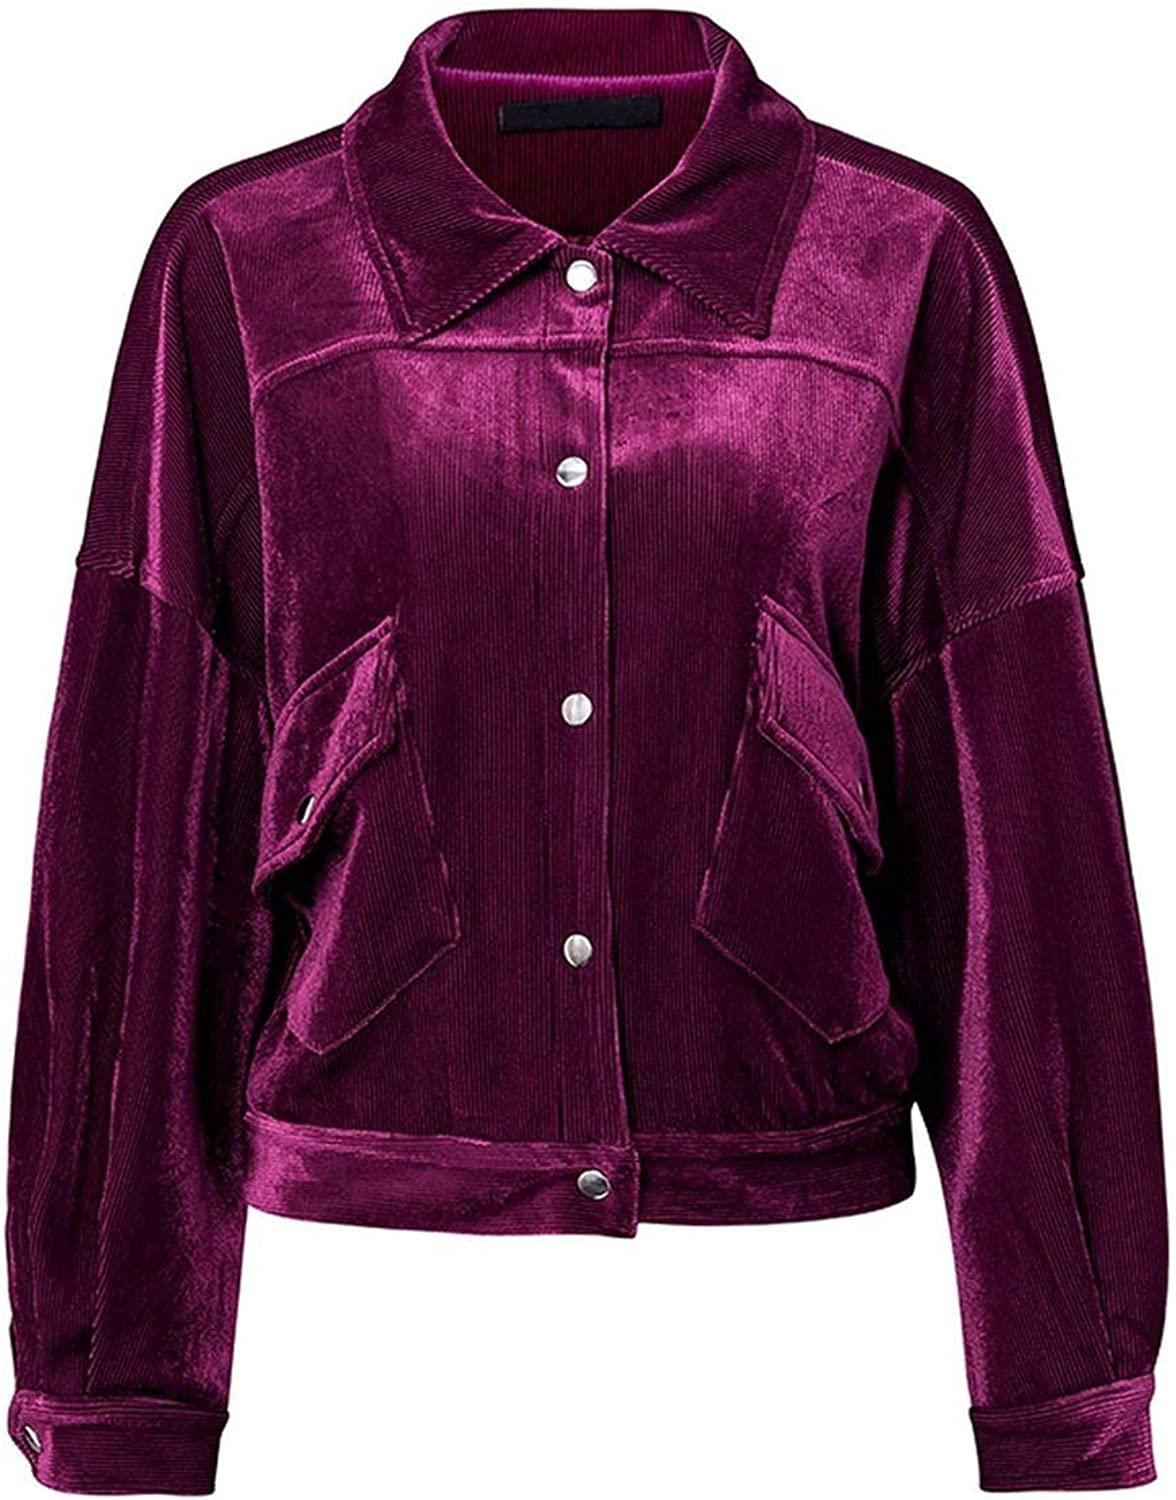 Contentment Corduroy Single Breasted Autumn Jacket Women Casual Pocket Coats Femme